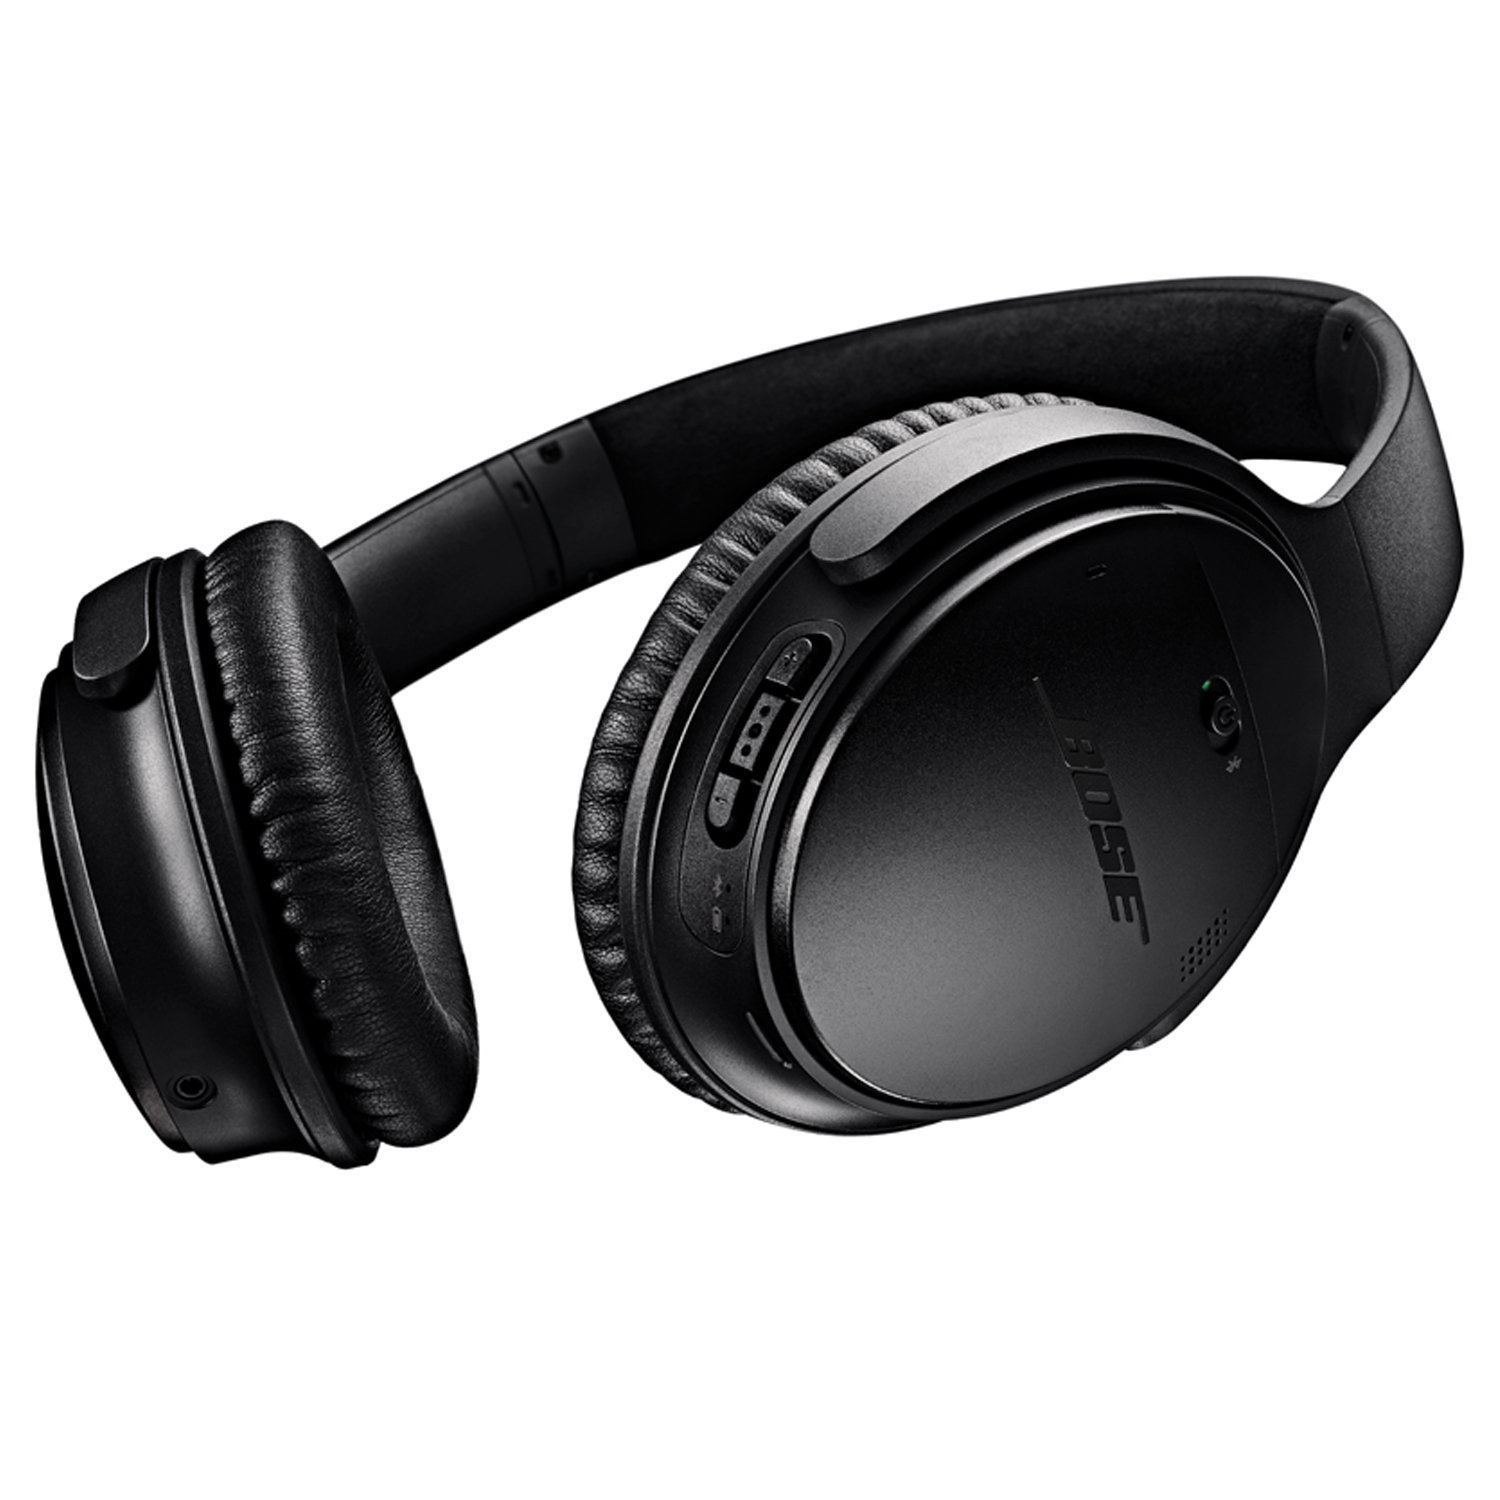 bose quietcomfort 35 bluetooth headphones great but not perfect rh seriouslytrivial com bose soundlink headphones instruction manual bose bluetooth headphones user manual